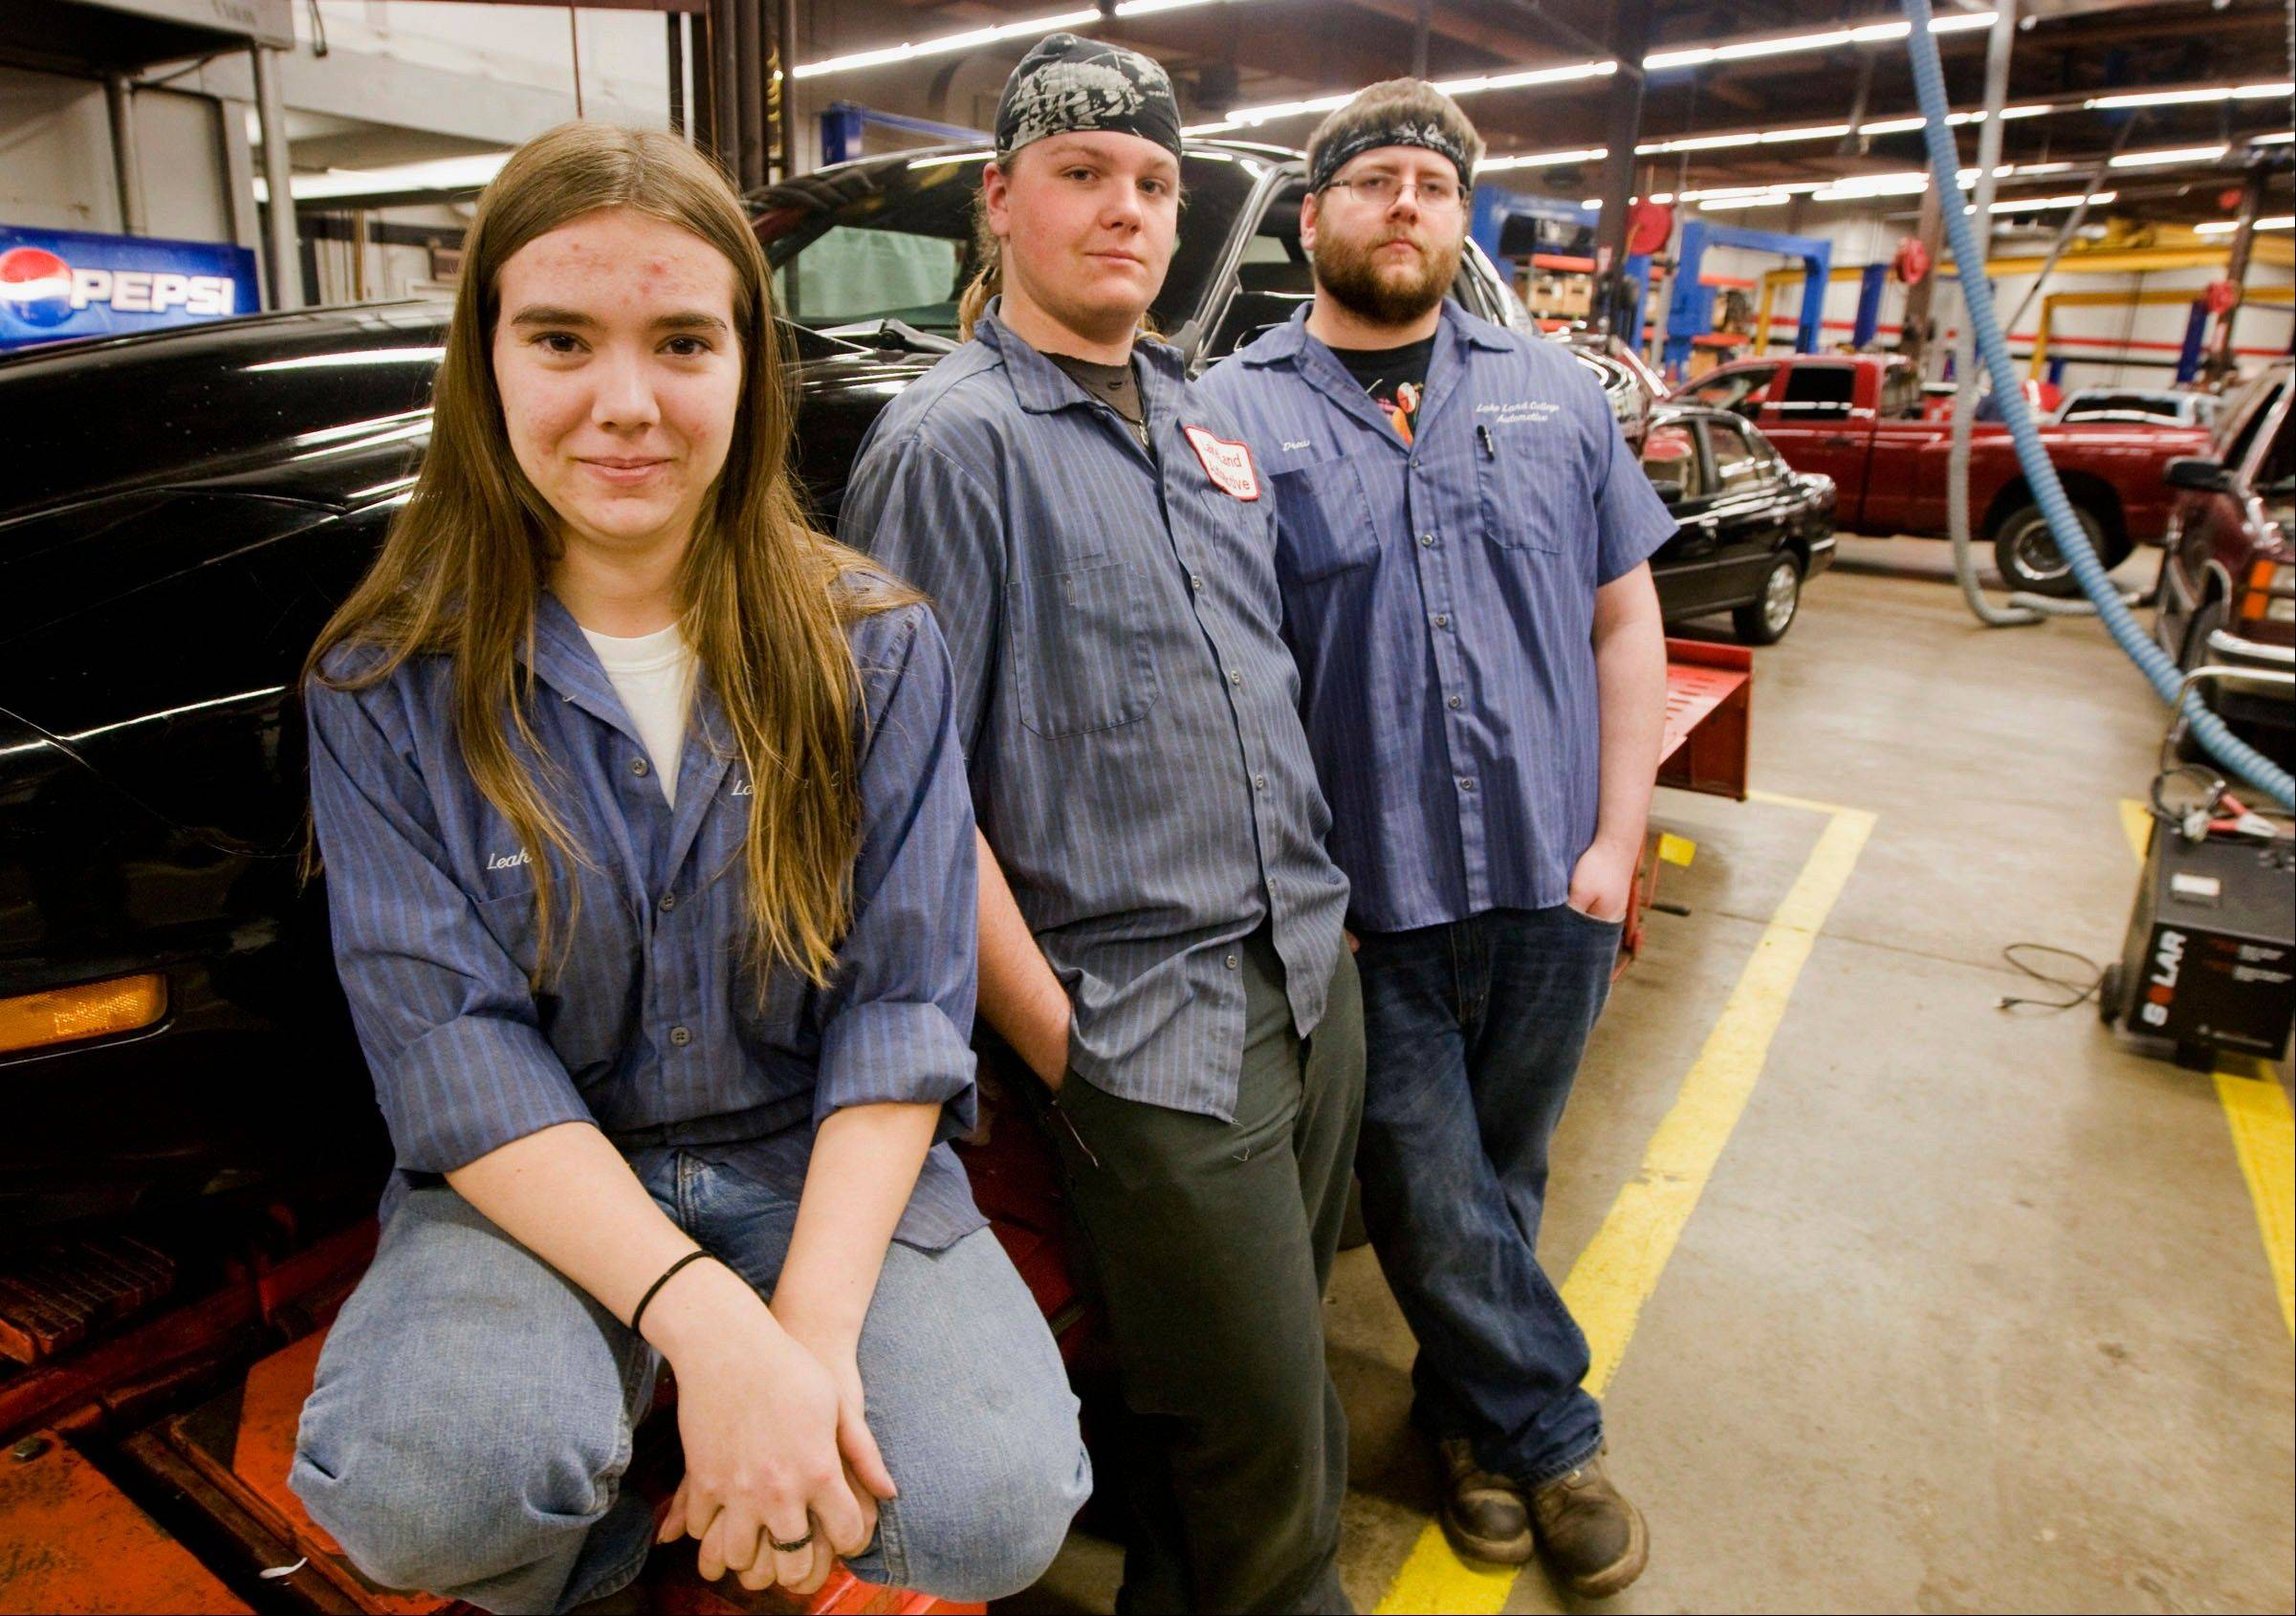 From Leah Oathout, Terry Adams and Drew Banks, members of the Lake Land College Automotive Club who work on and race cars for the school in Mattoon, Ill. Oathout, 20, from Bethany, Ill., is an automotive major who has been dabbling in extracurricular drag .